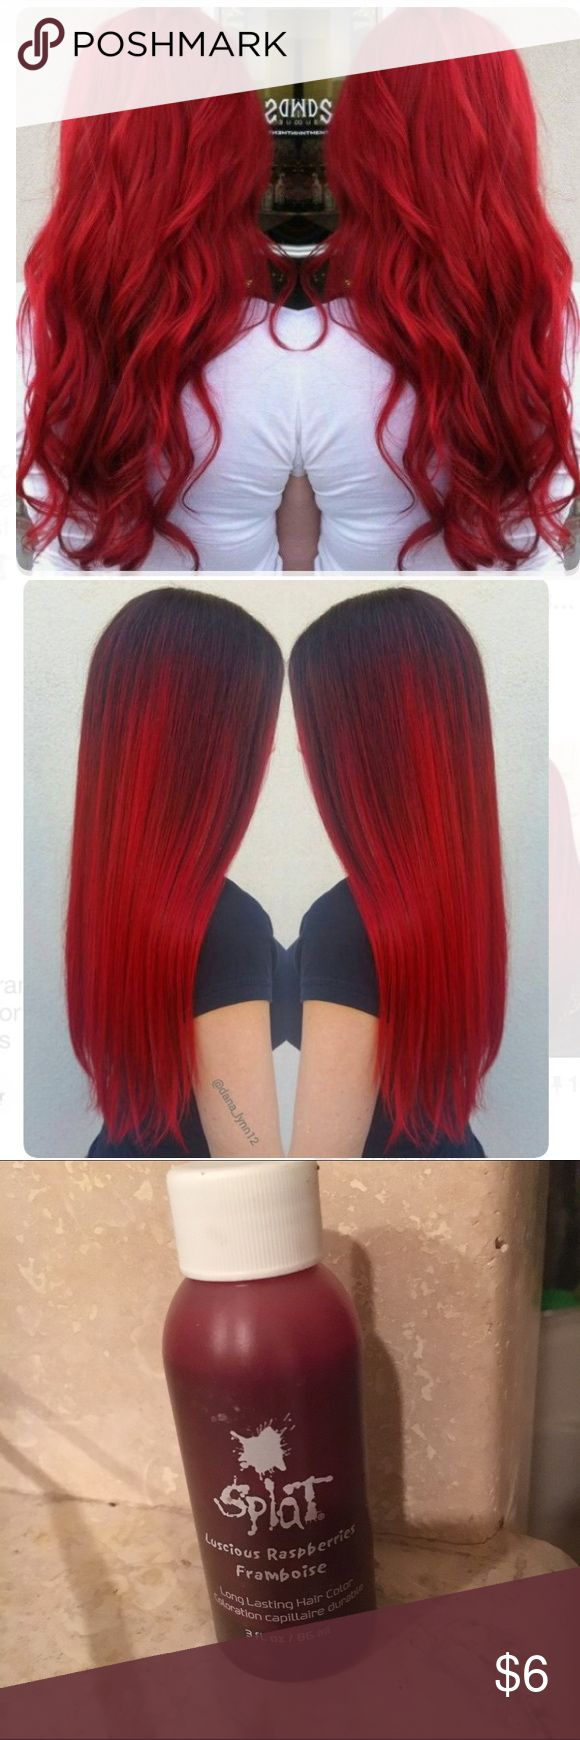 Splat red hair dye Bright red Ariel mermaid hair color. Lasts months! splat  Accessories Hair Accessories                                                                                                                                                                                 Más